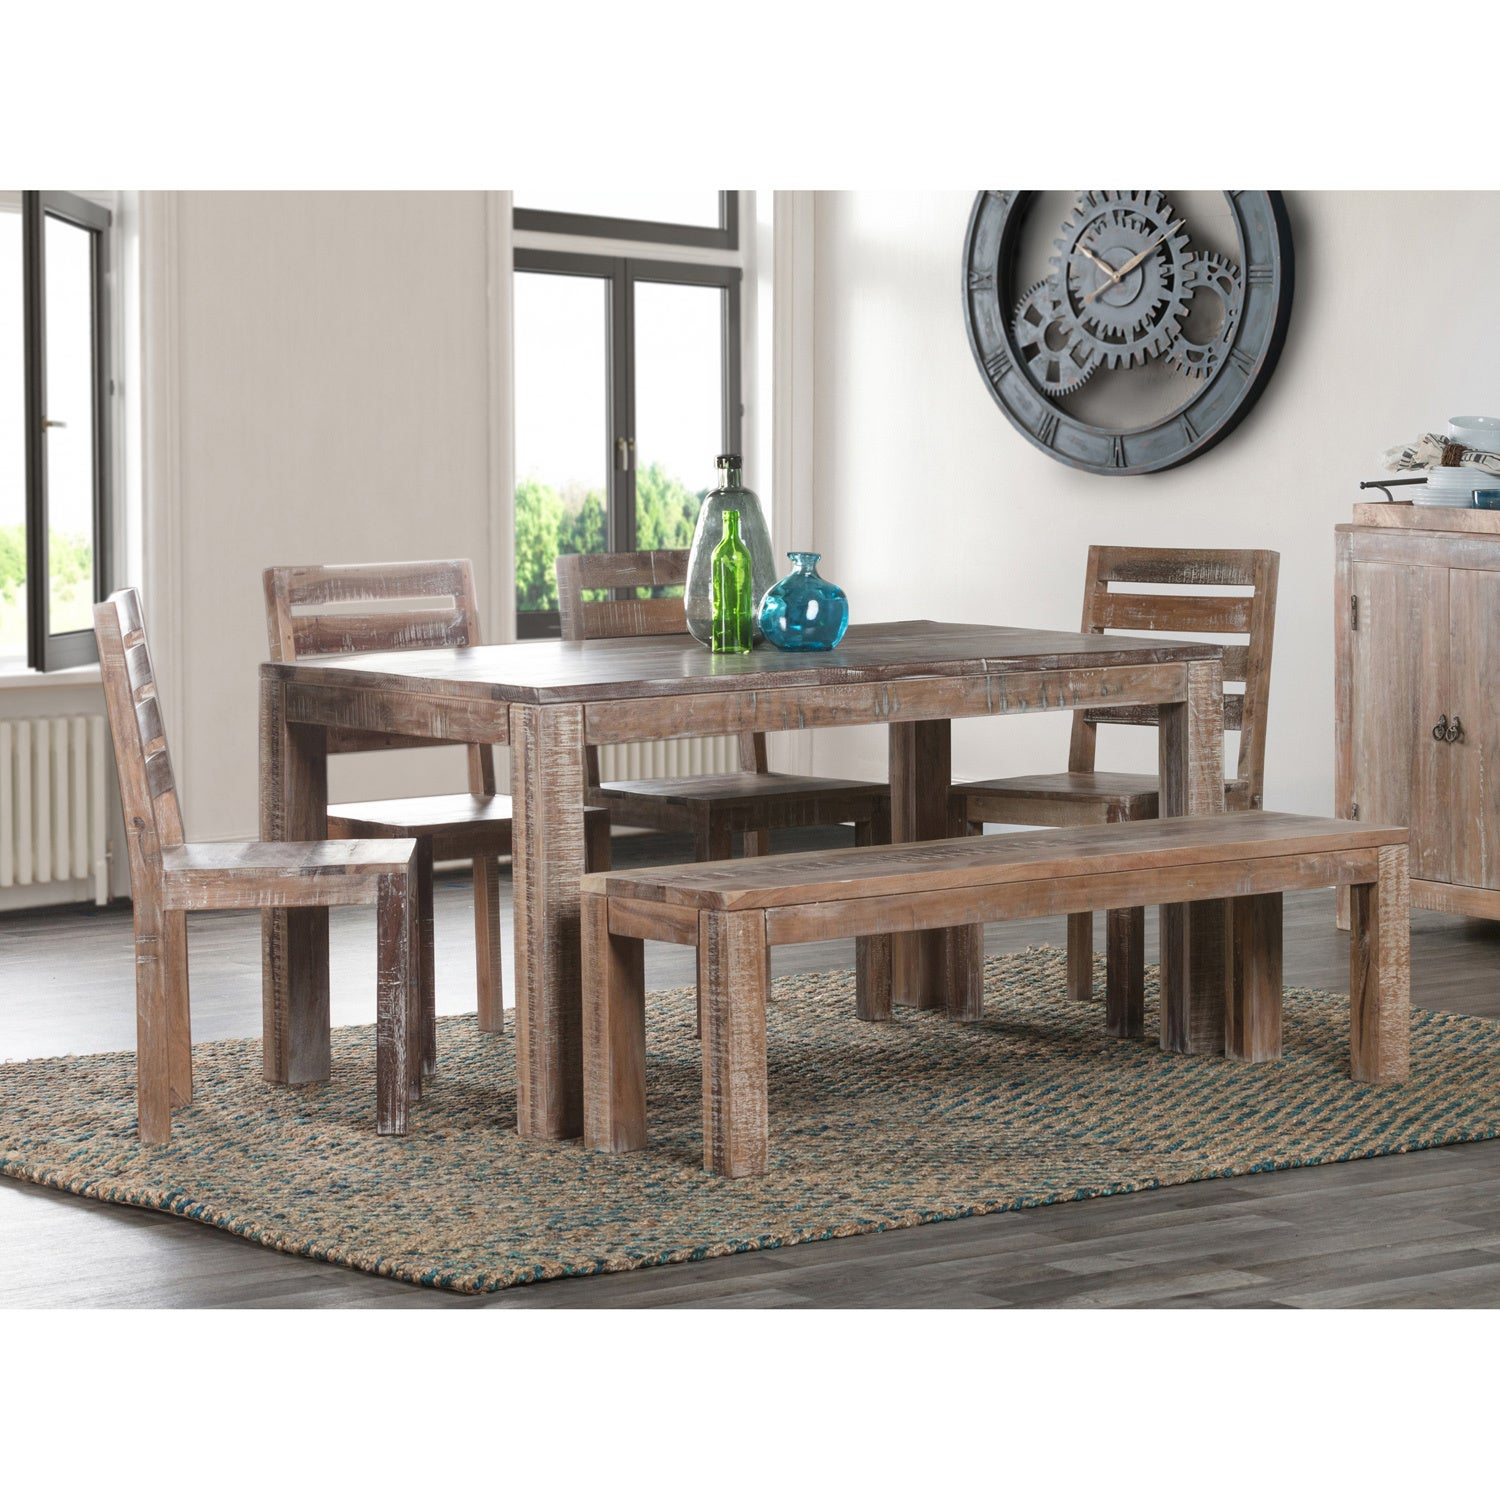 Hamshire Reclaimed Wood 72 inch Dining Table by Kosas Home Free